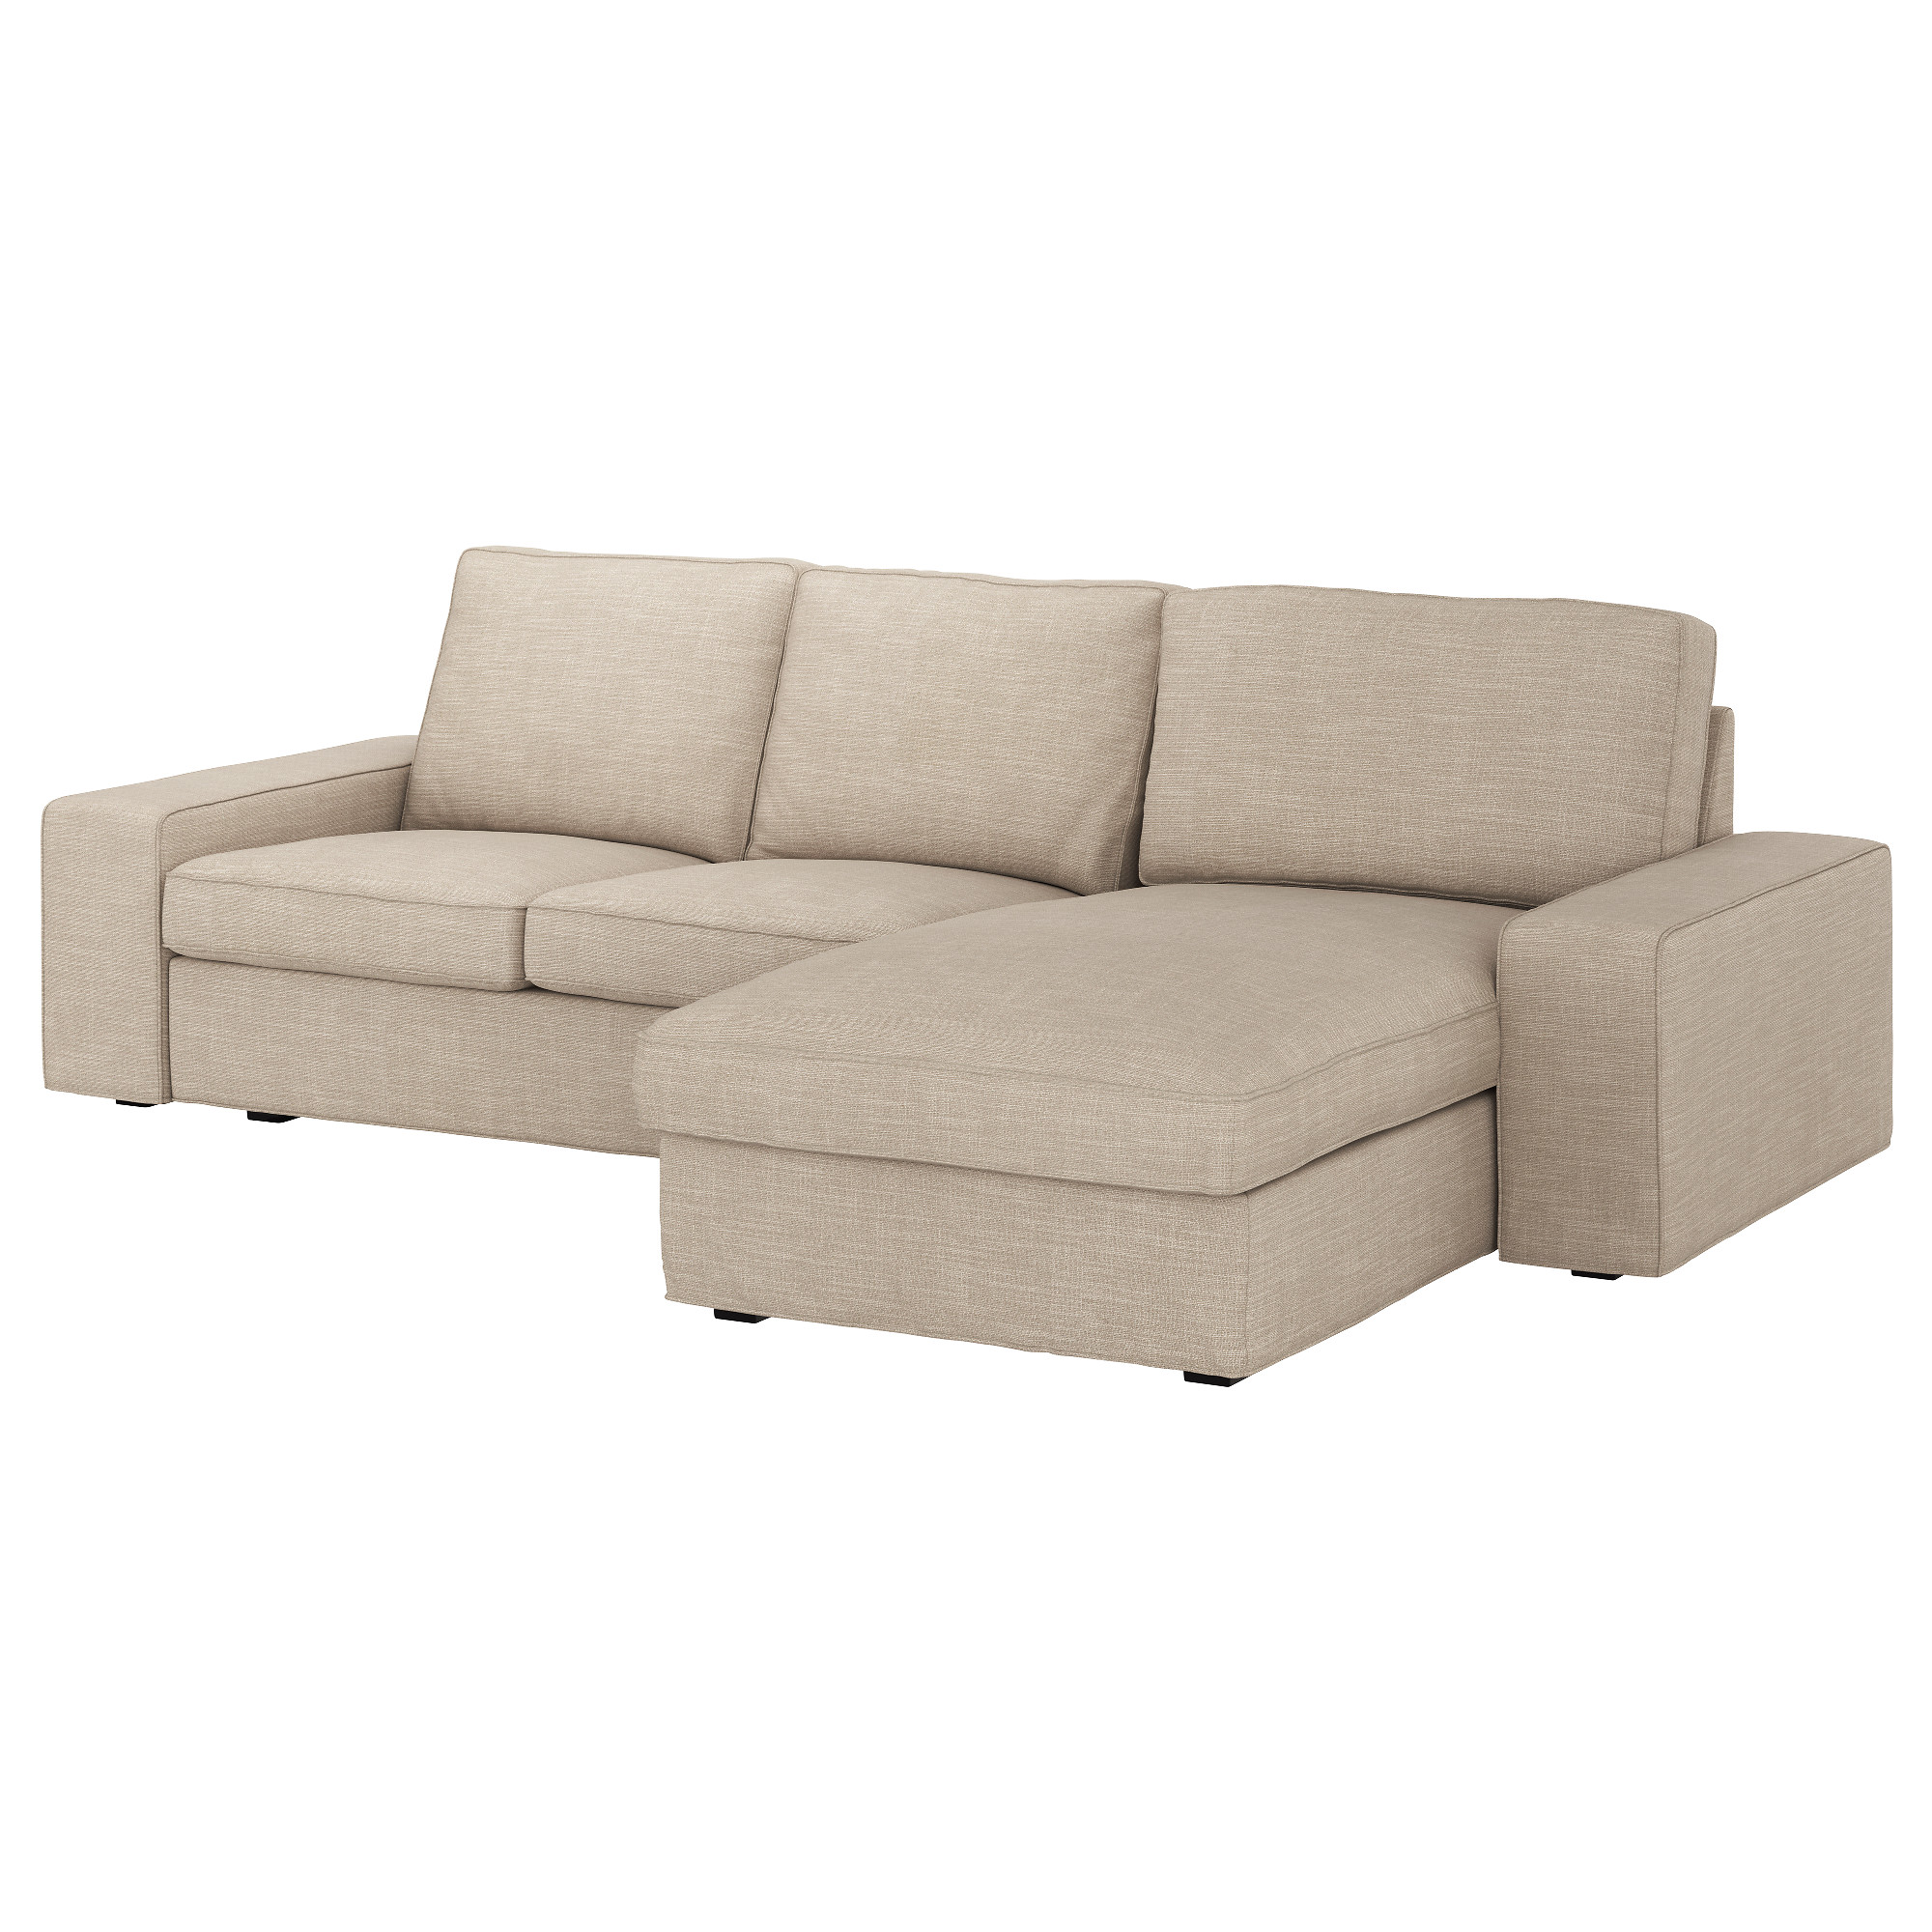 King Sofa Ikea 3 Seater